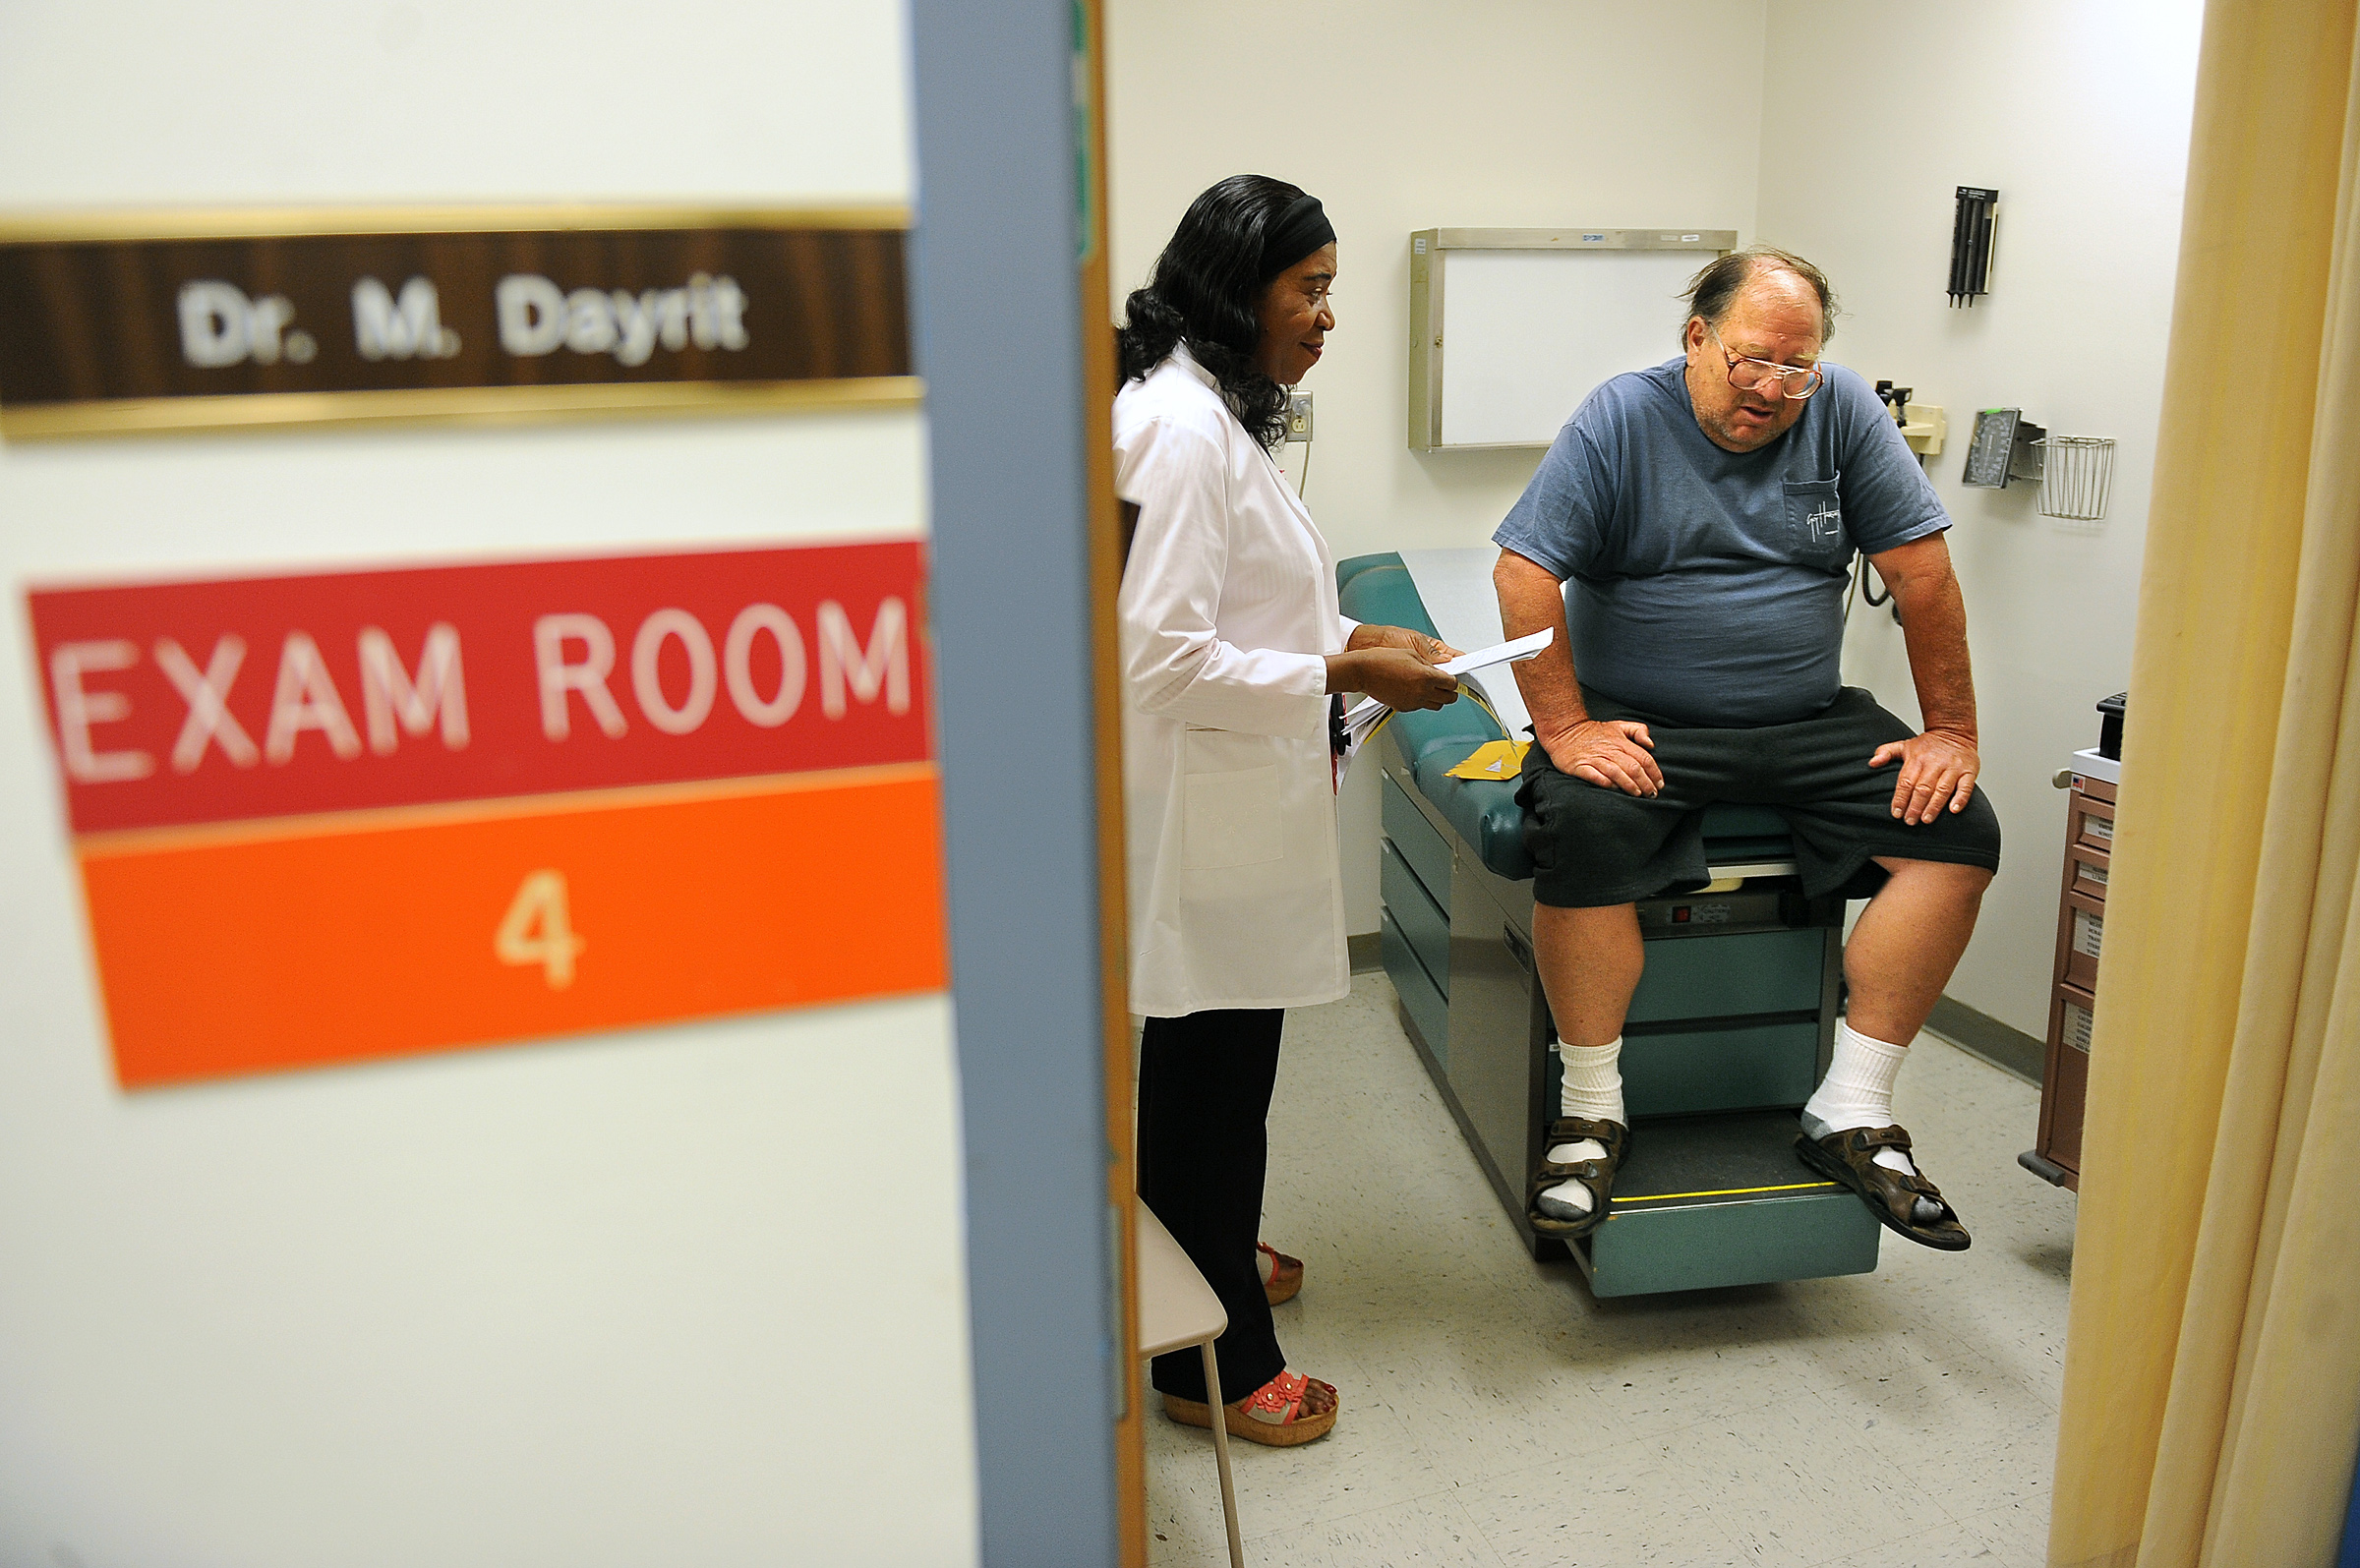 """A patient sits on a doctor's exam table while the doctor stands beside them. Visible outside the room are signs reading, """"Dr. M. Dayrit, exam room 4."""""""